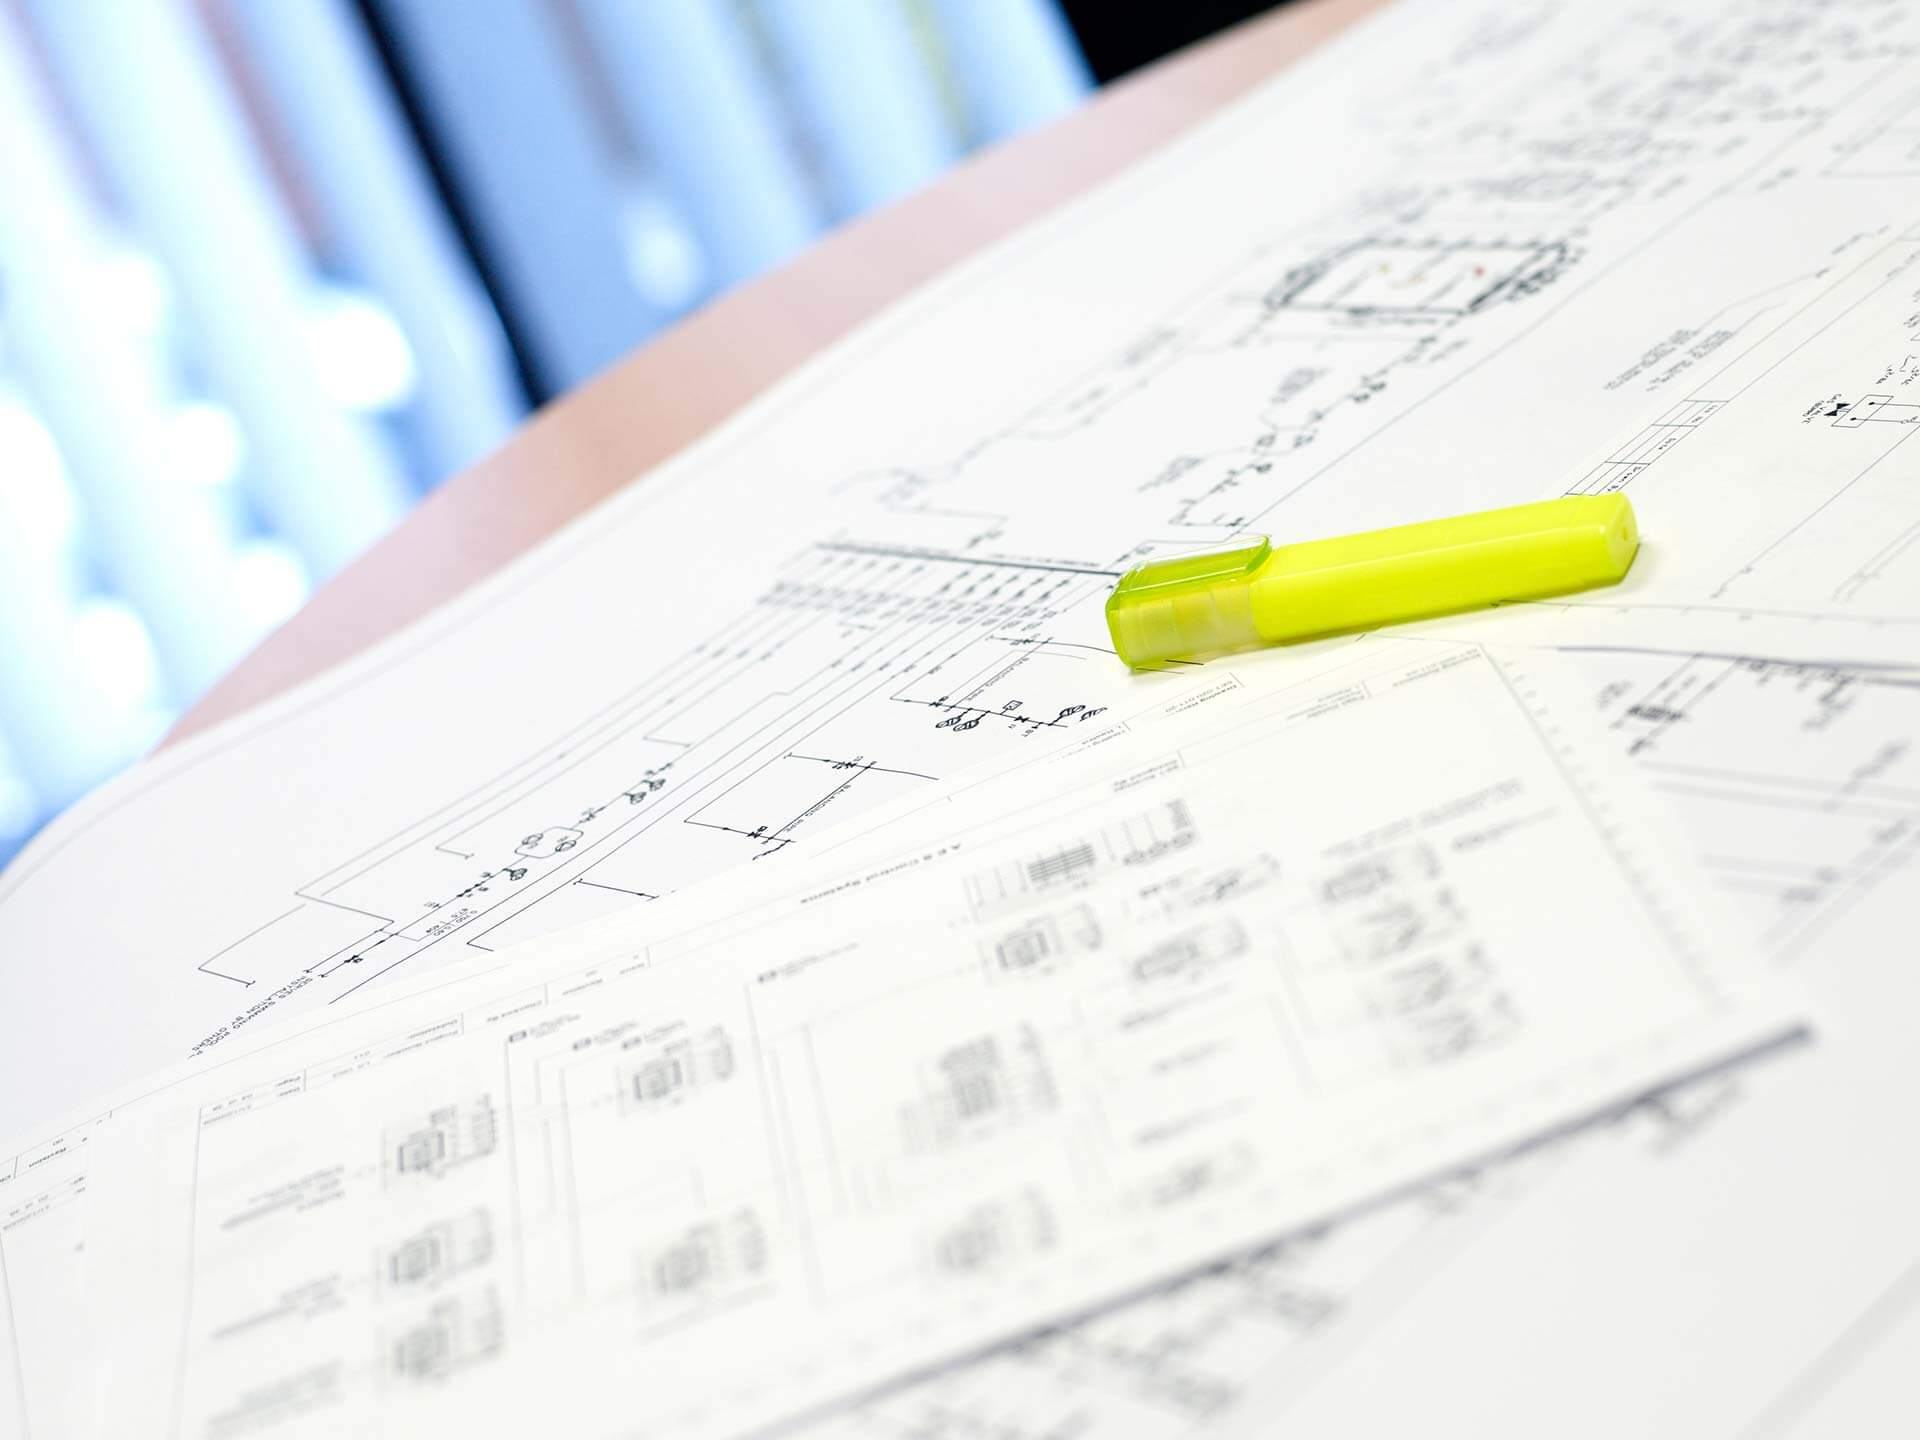 Building Management Systems Drawings